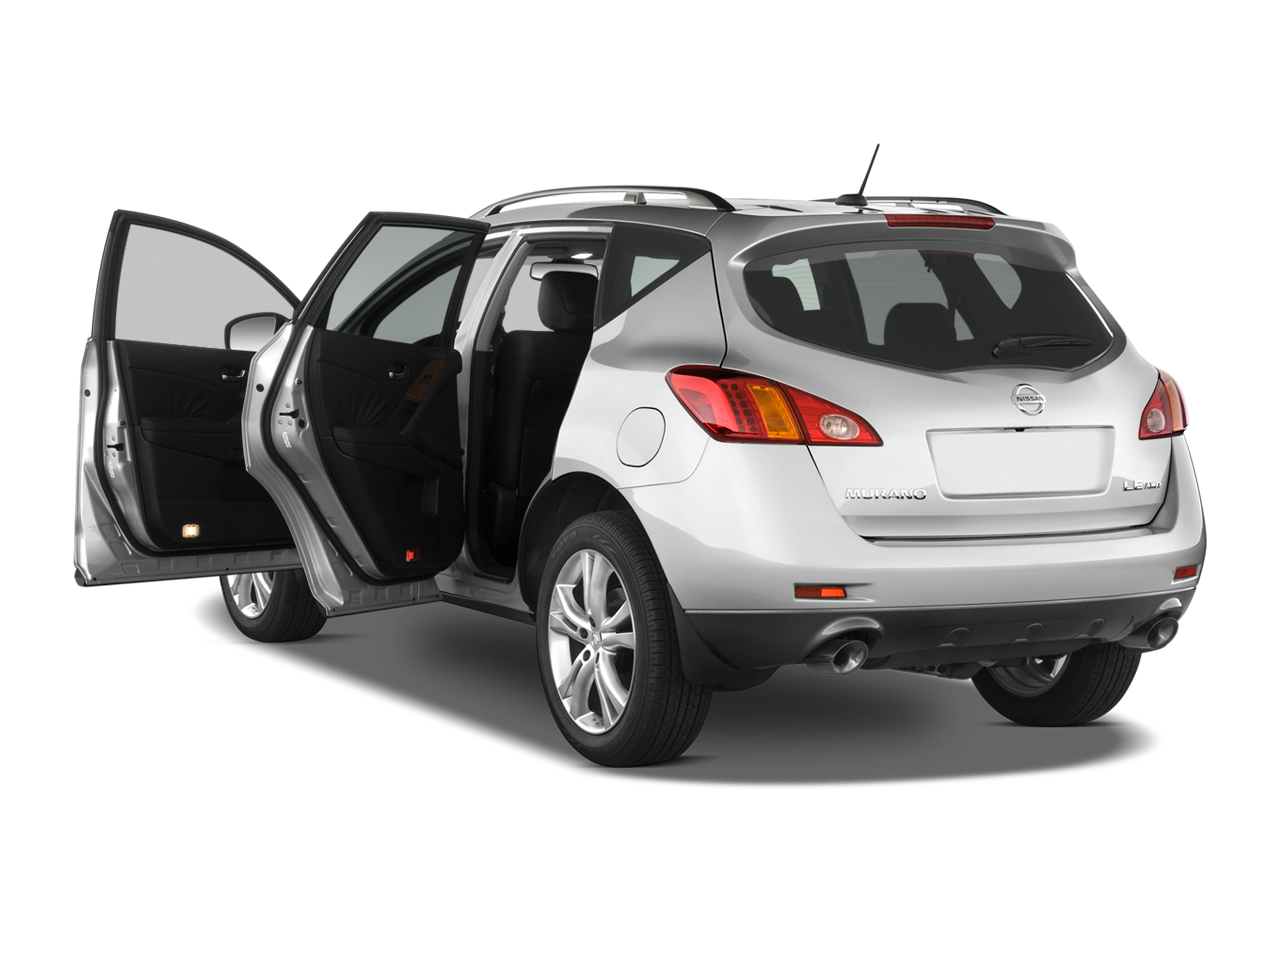 2010 Nissan Murano Sl Awd Editors Notebook Review